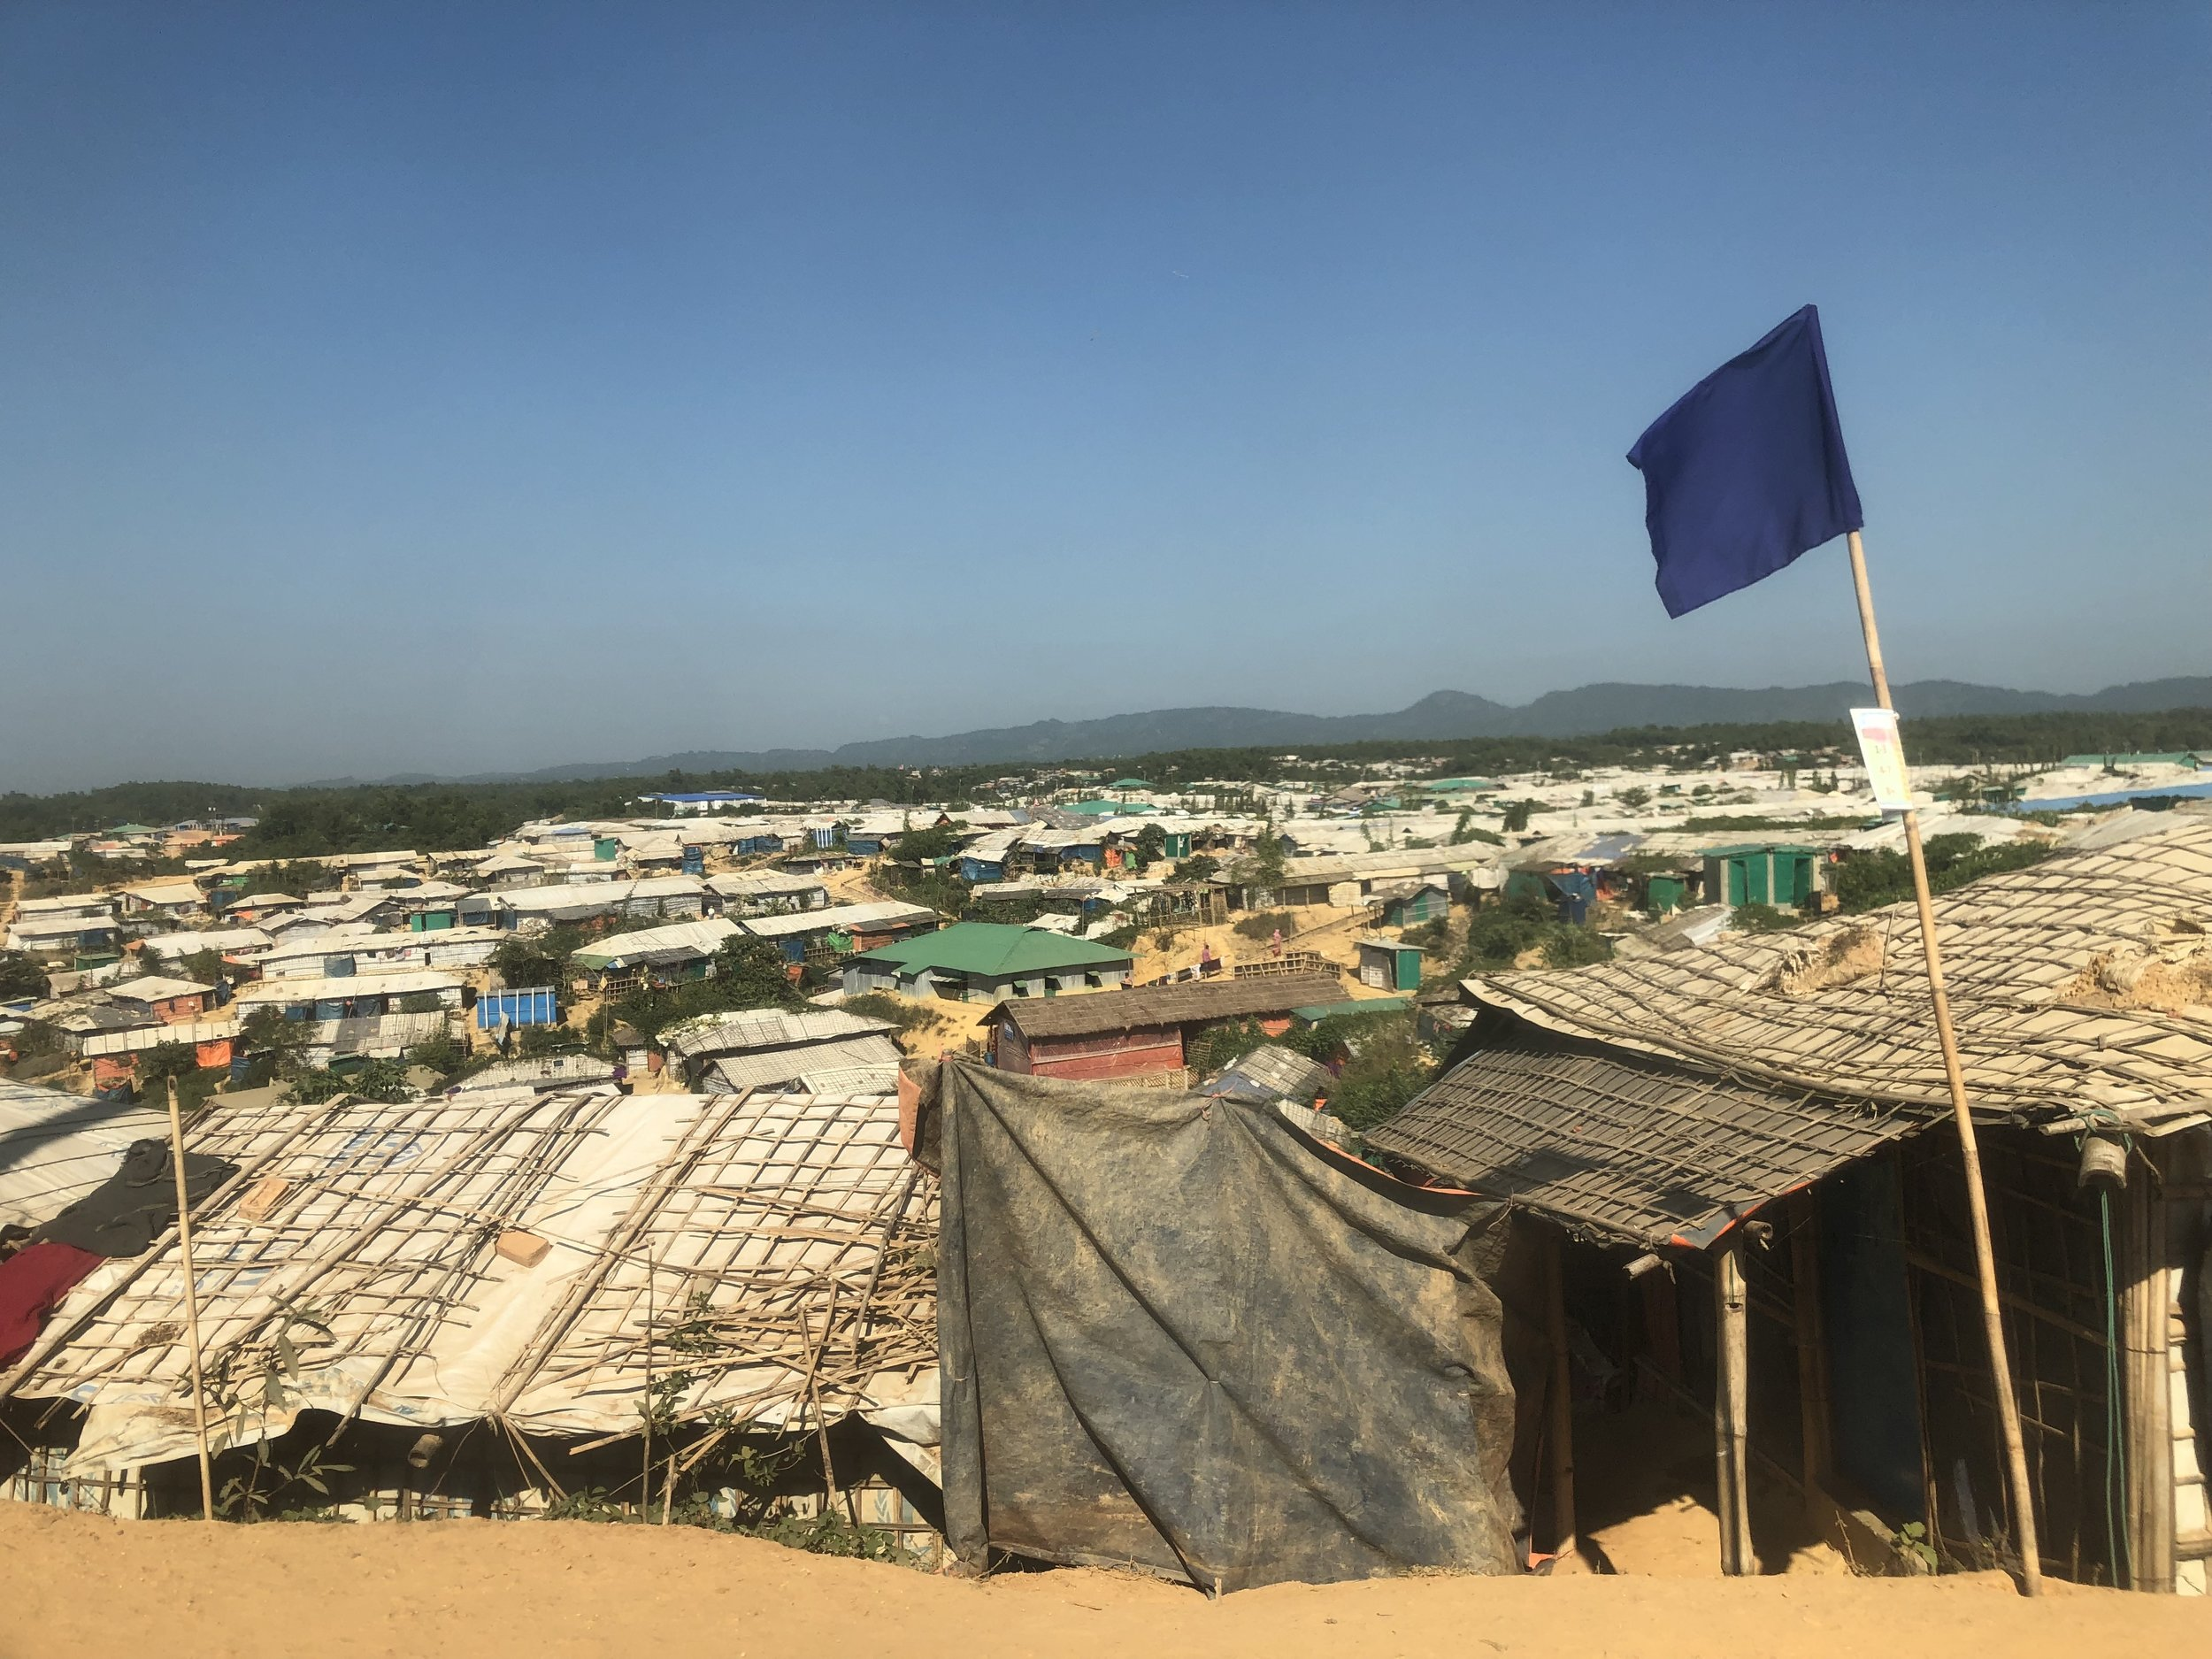 Cox's Bazar, Bangladesh (Source: ALTO Global Consulting)